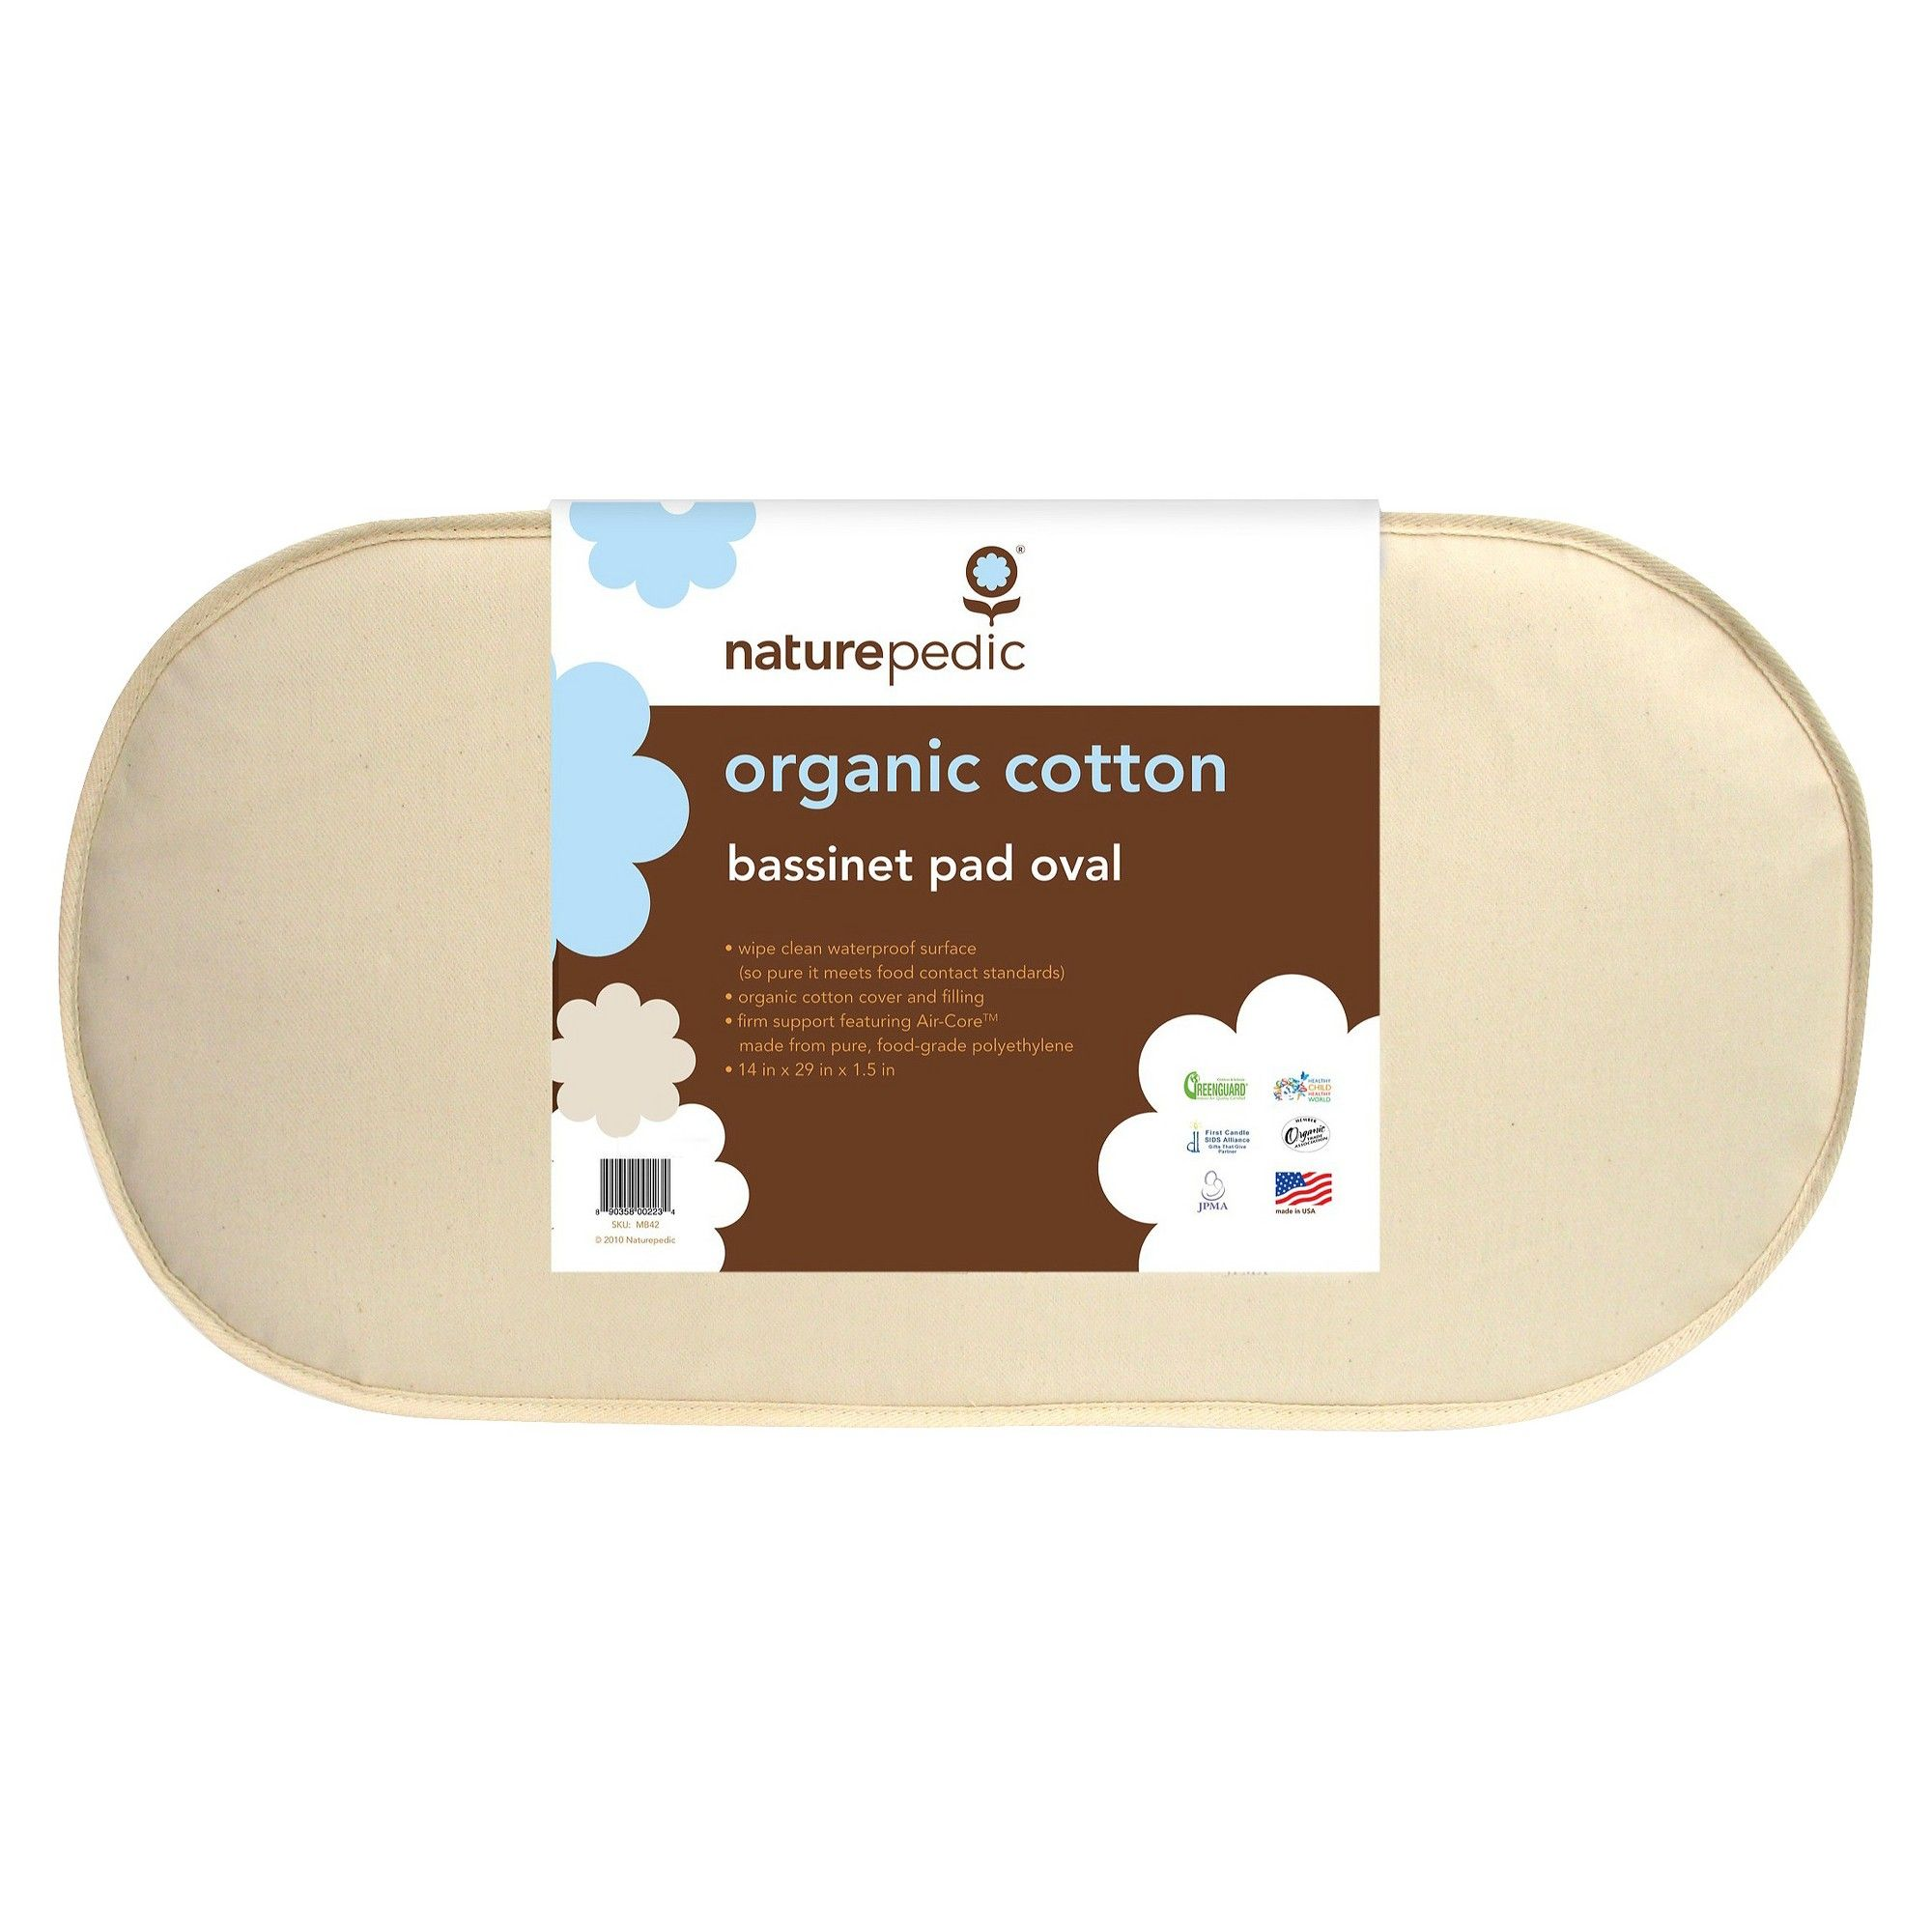 naturepedic organic cotton oval bassinet mattress organic cotton